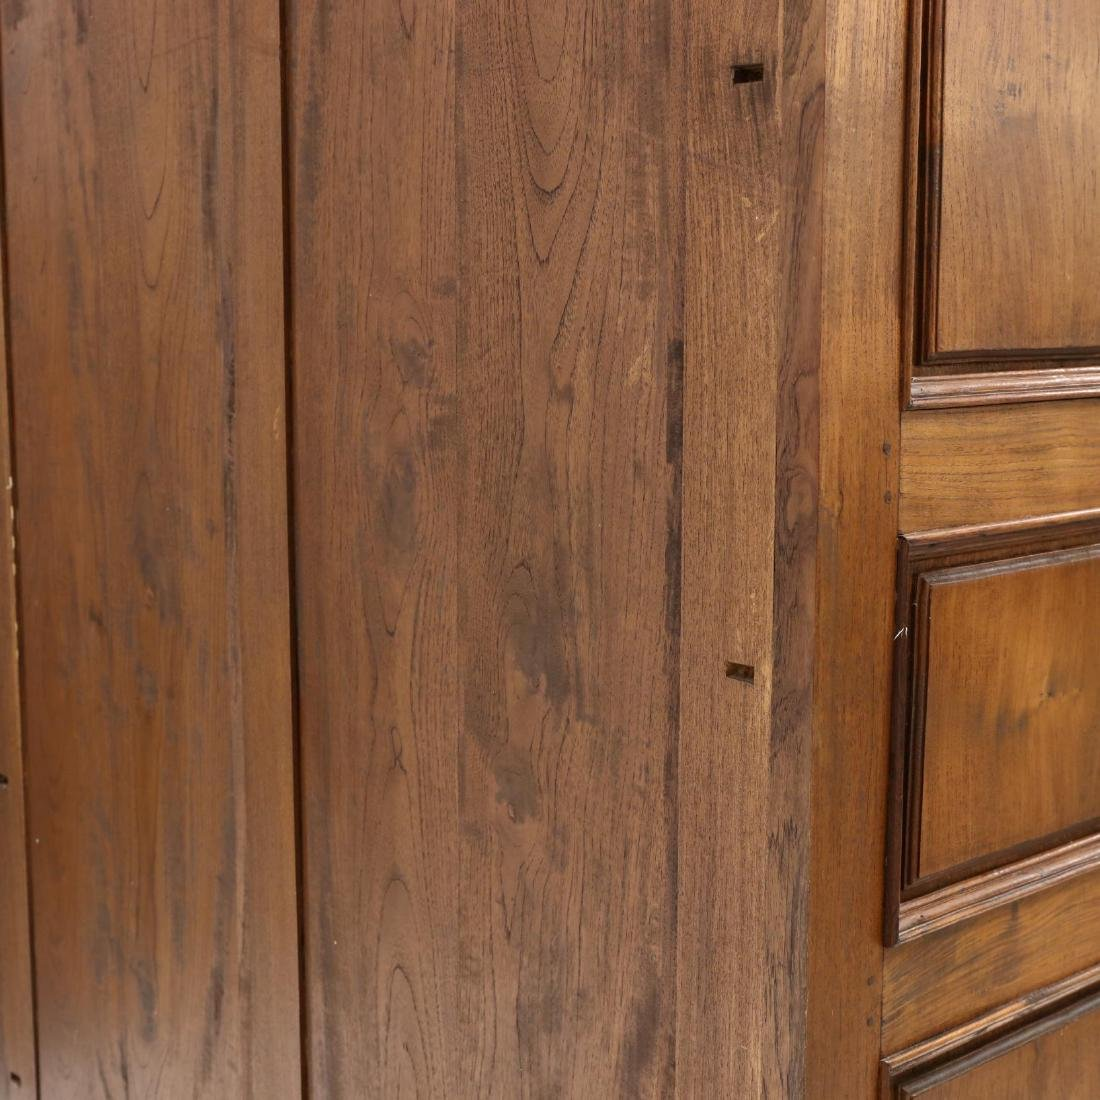 French Provincial Style Carved Mahogany Armoire - 8